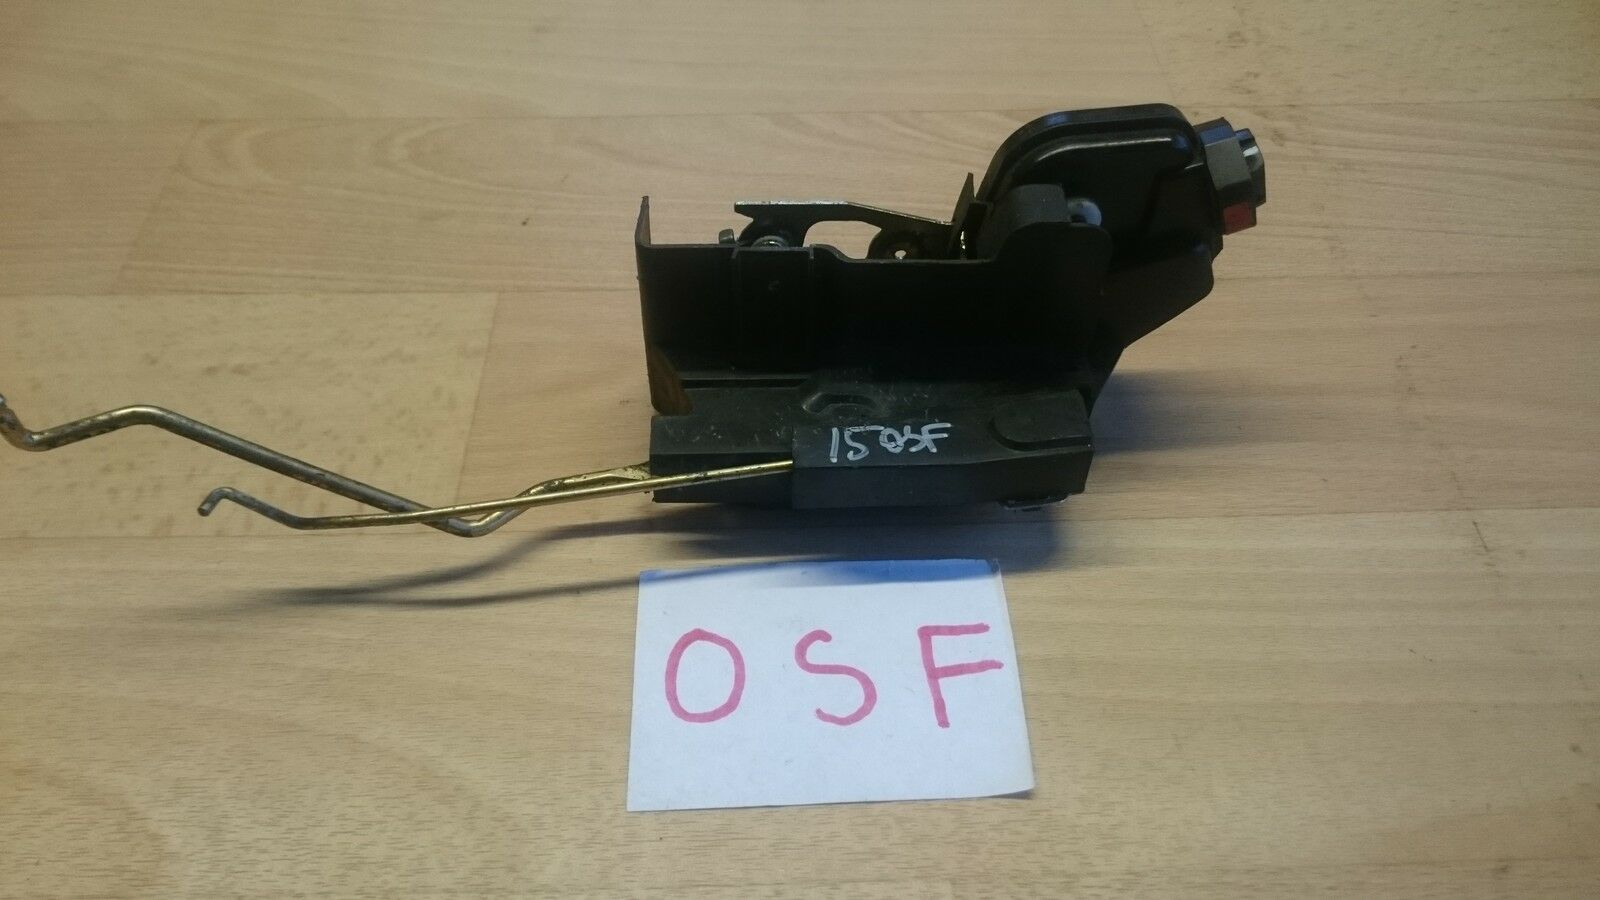 Hyundai Terracan 29 Crdt 2003 O S F Driver Side Rh Front Door Lock Fuse Box 1 Of 1only 4 Available